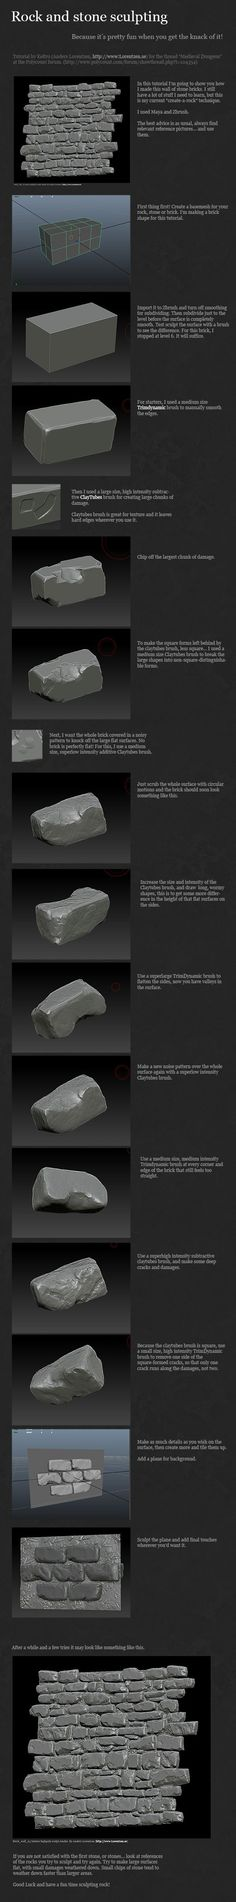 Medieval Dungeon [UDK] - Page 2 - Polycount Forum. Some tips on how to model rocks/stones and put in dents. Maya Modeling, Modeling Tips, Zbrush Tutorial, 3d Tutorial, Blender 3d, Zbrush Environment, Low Poly, Zbrush Models, Hard Surface Modeling